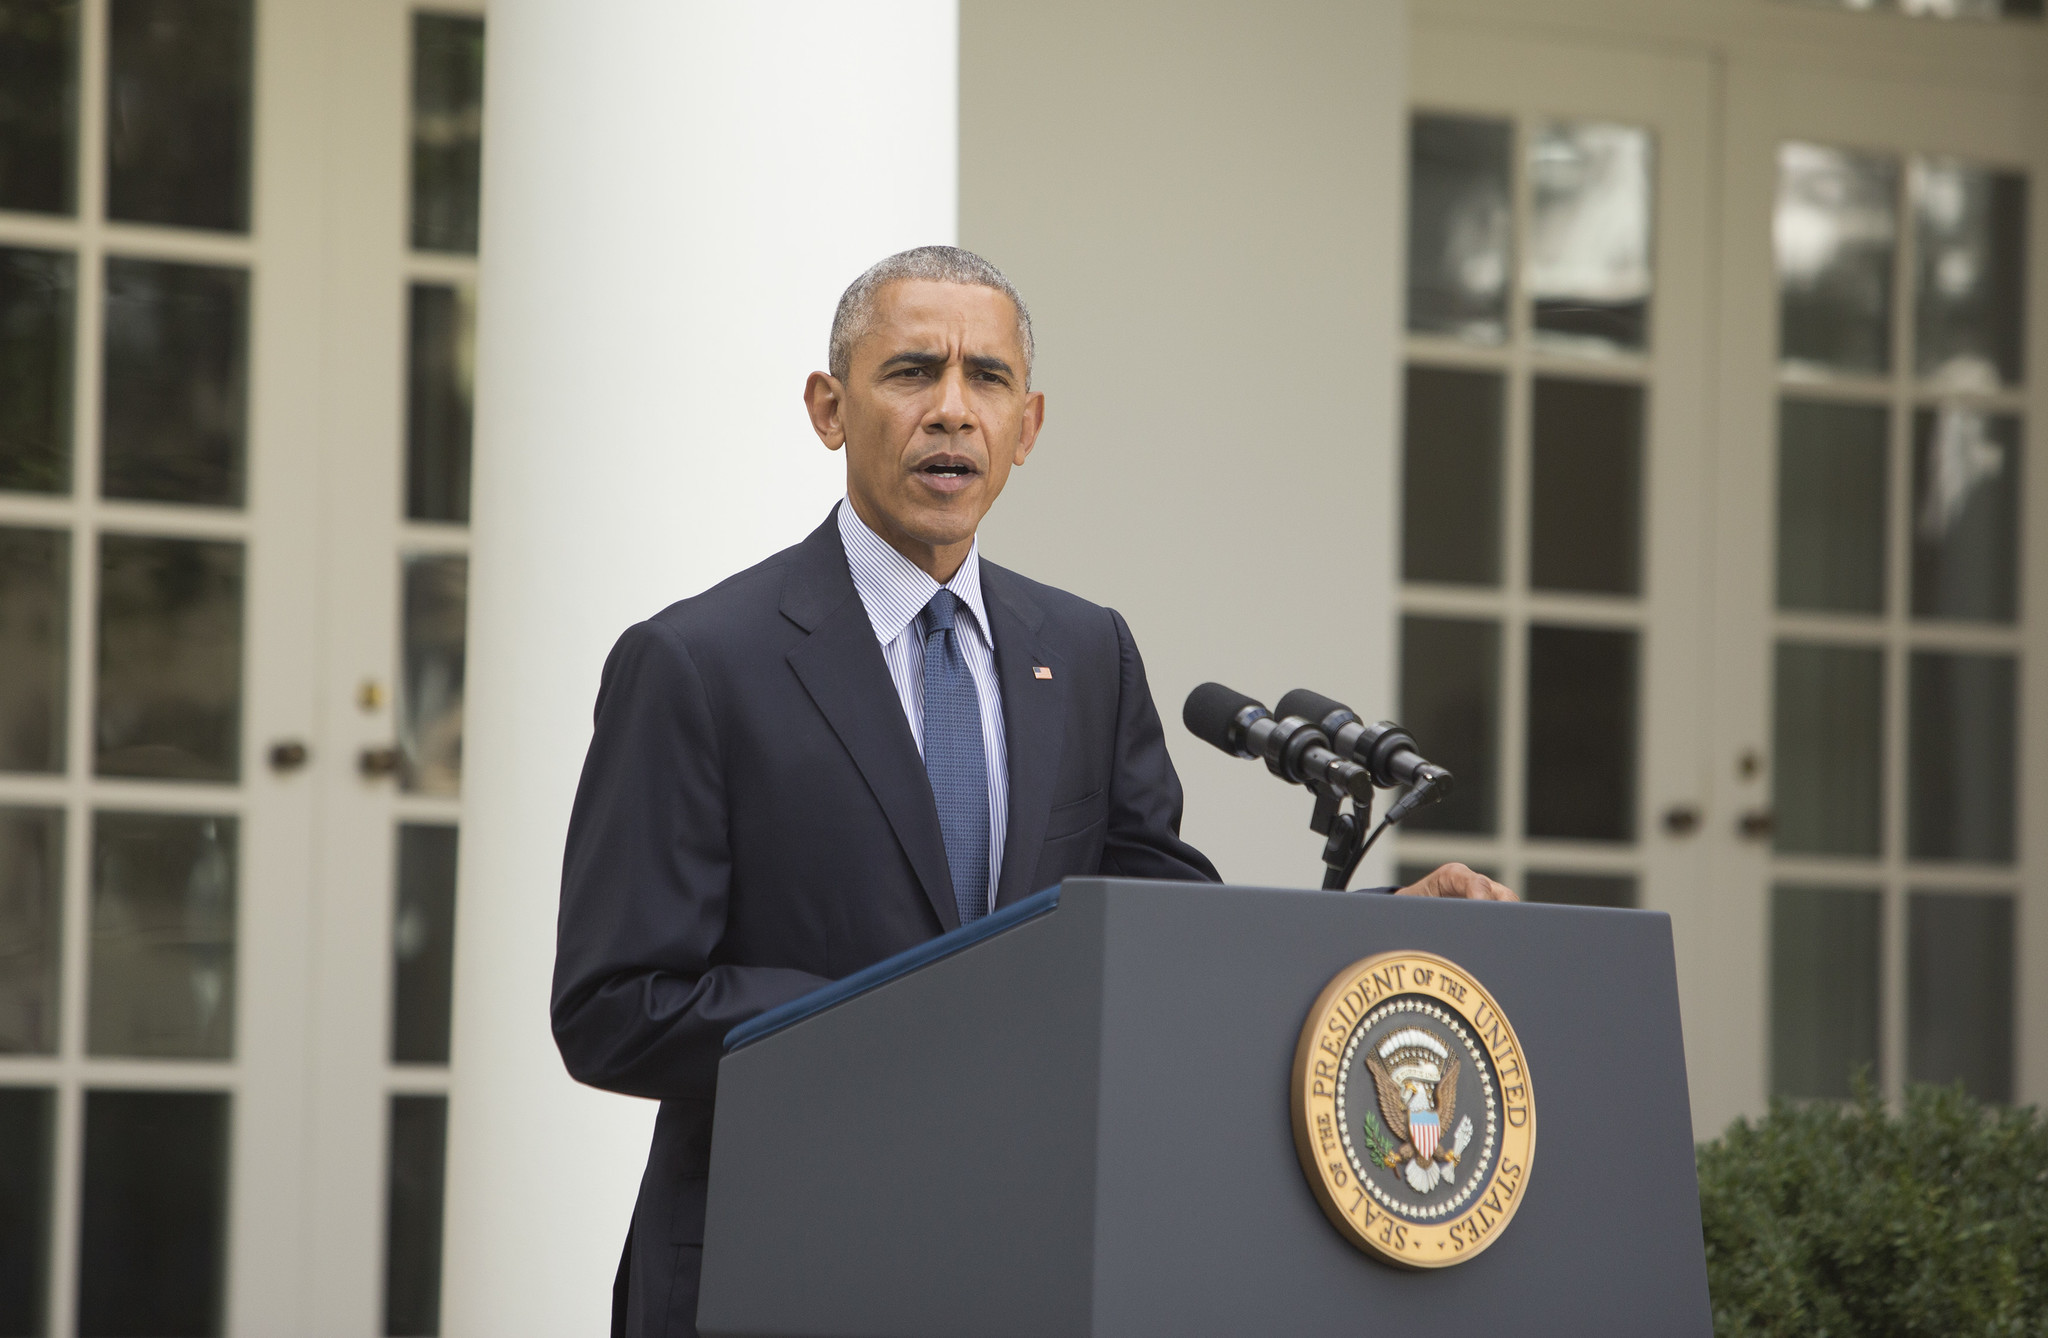 obama warns against taking dramatic steps that could harm economy obama warns against taking dramatic steps that could harm economy chicago tribune